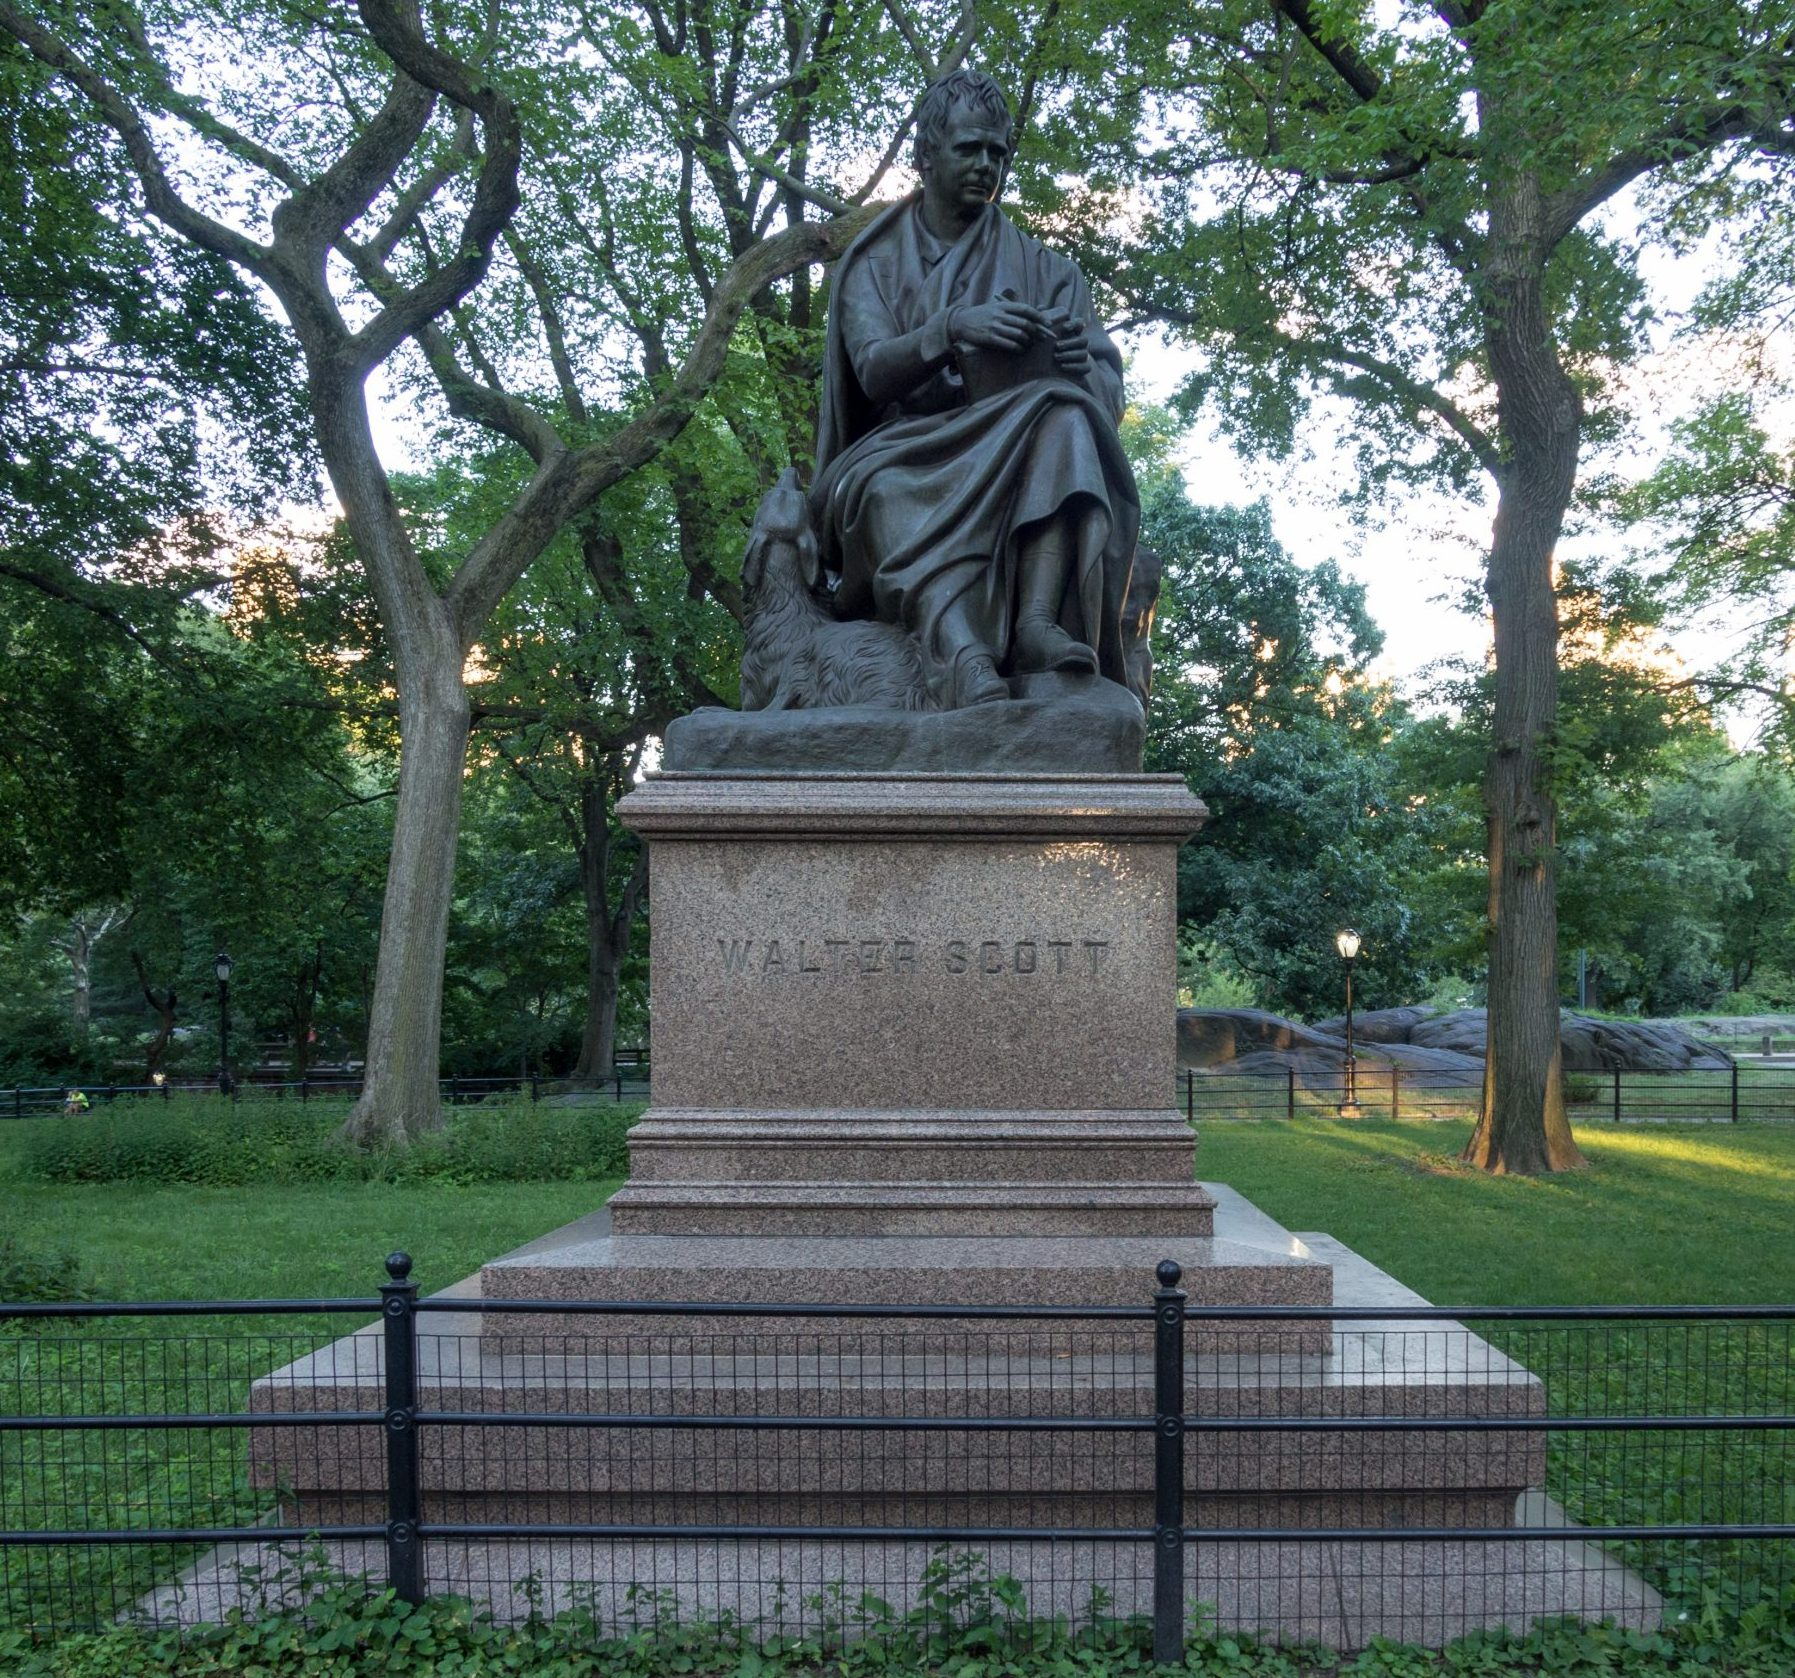 Walter Scott statue, Central Park statues, Central Park mall, Literary Walk